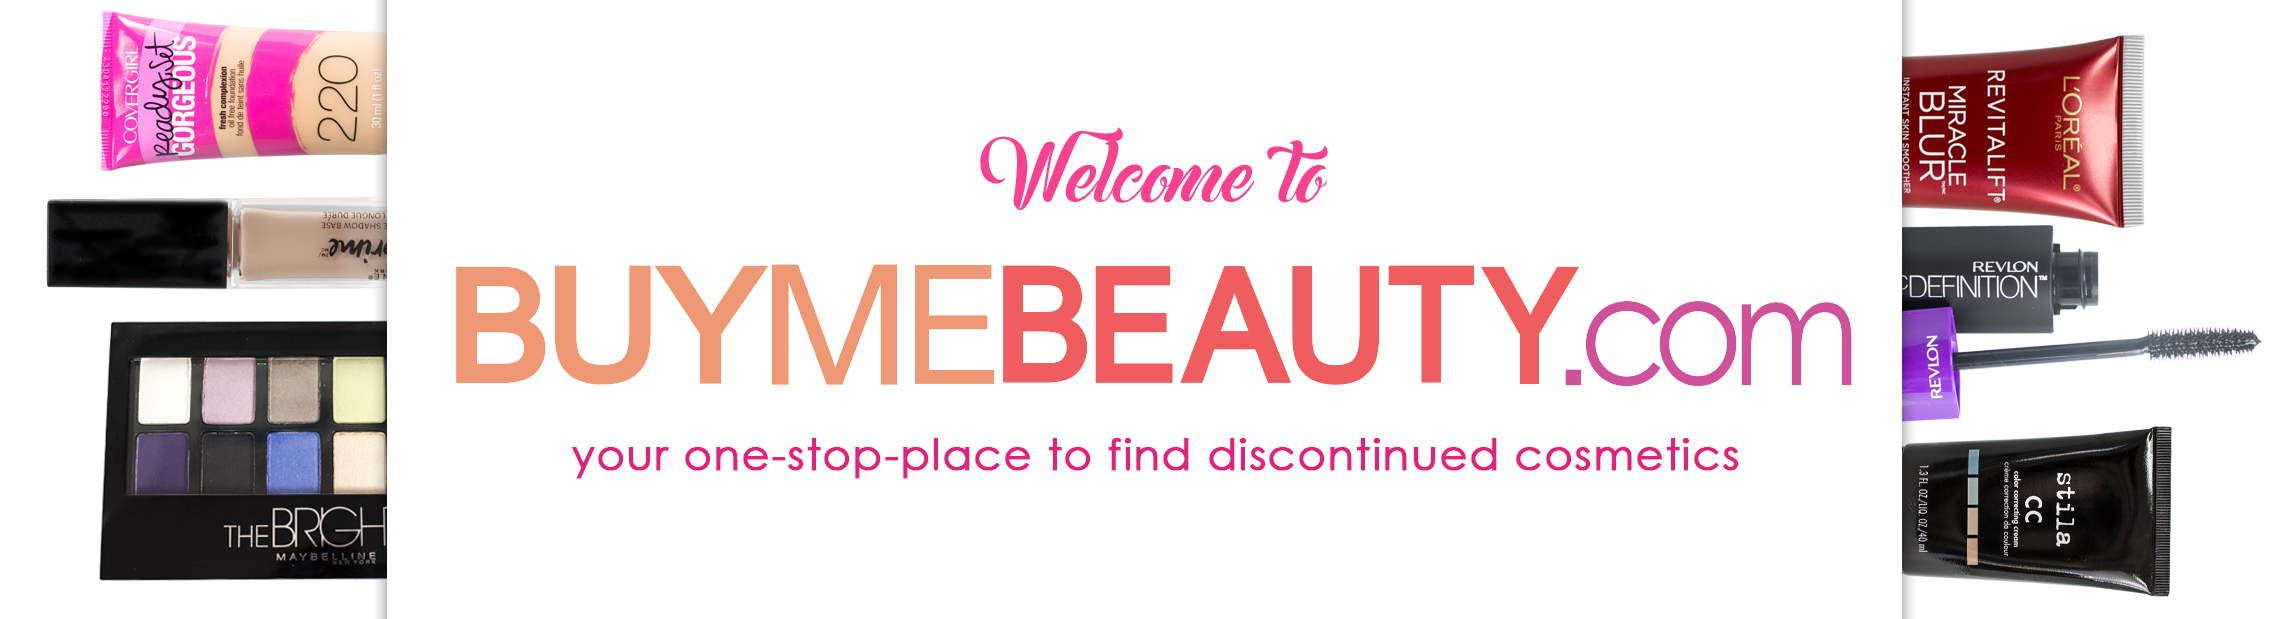 BuyMeBeauty com | Discontinued Makeup, Beauty Products, and